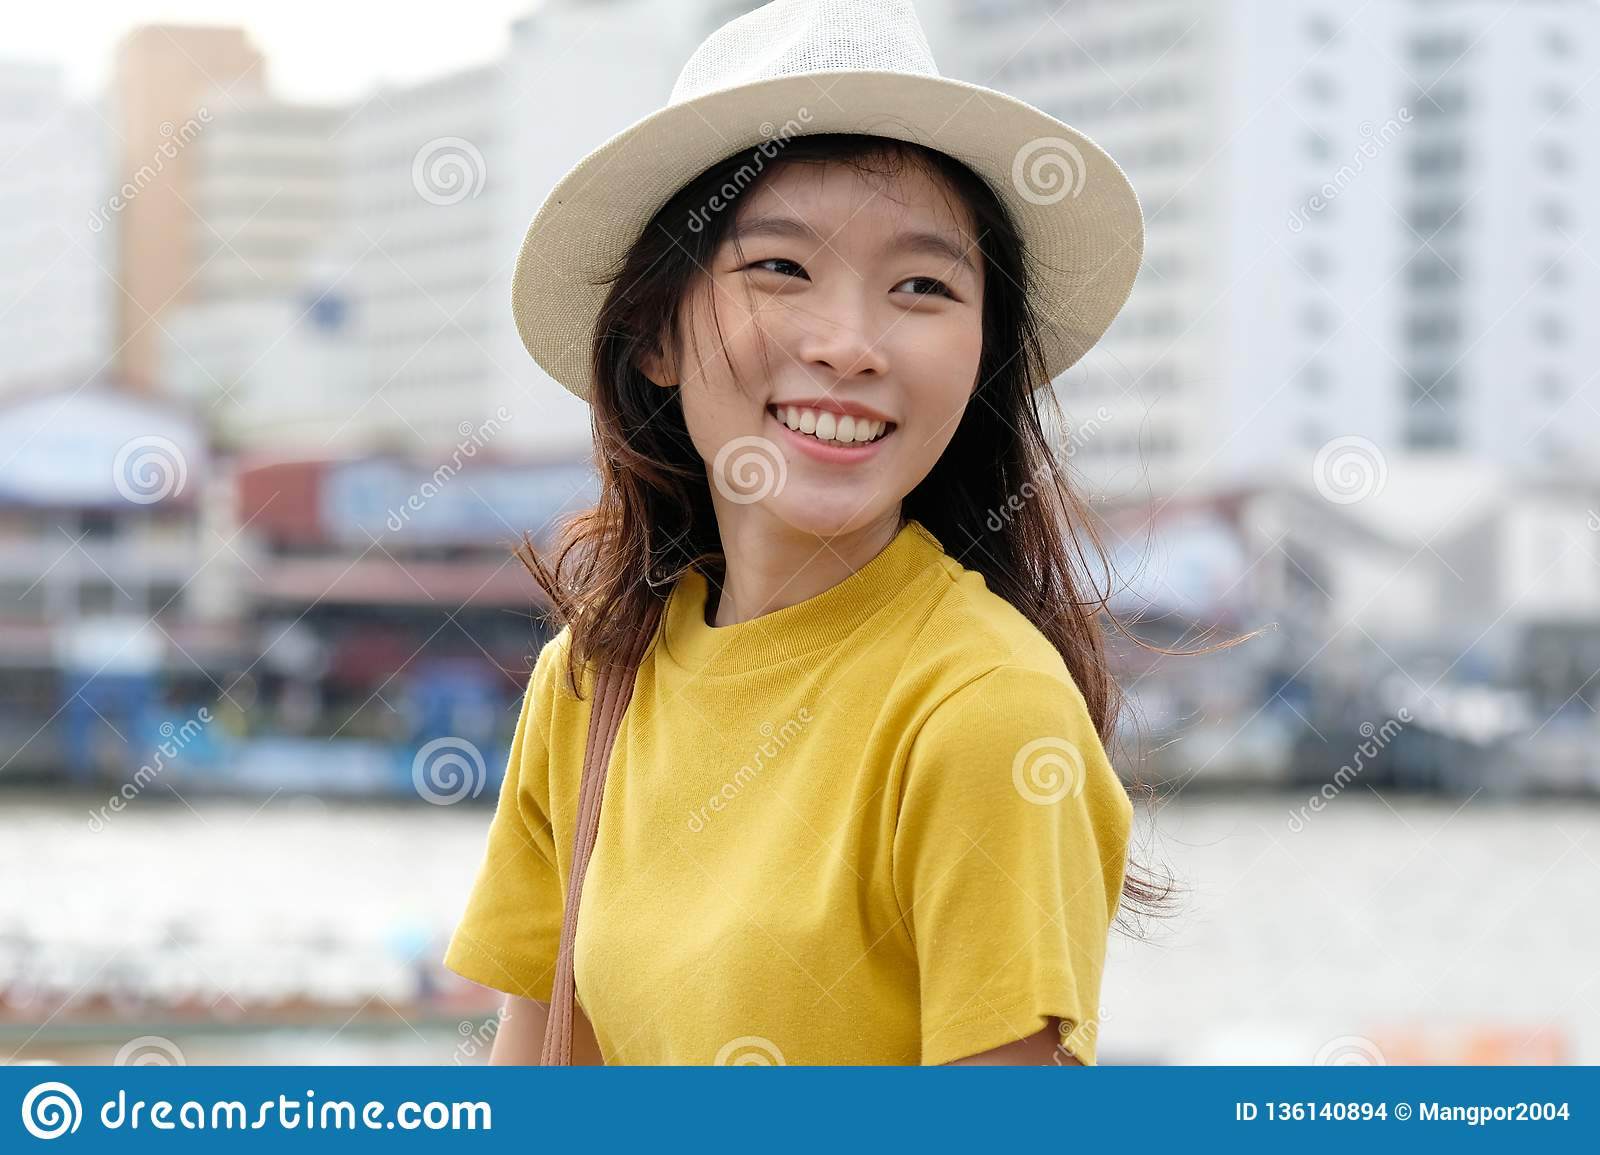 Young asian woman portrait smiling with happiness at city outdoors background, happy moment, casual lifesyle, travel blogger